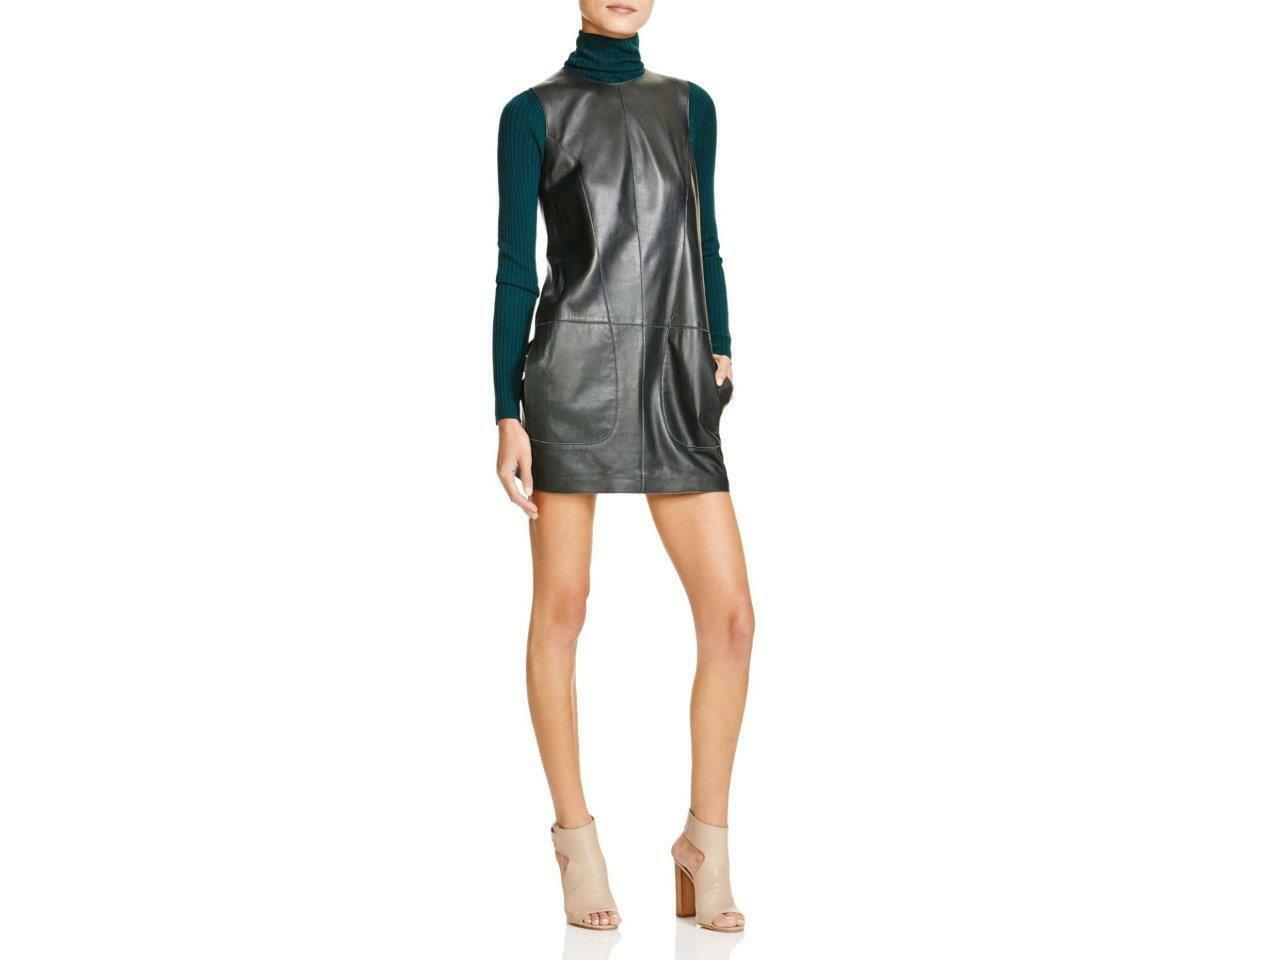 Vince Pine Green Leather Shift S L Dress  NWT 8 Bloomingdale's Exclusive